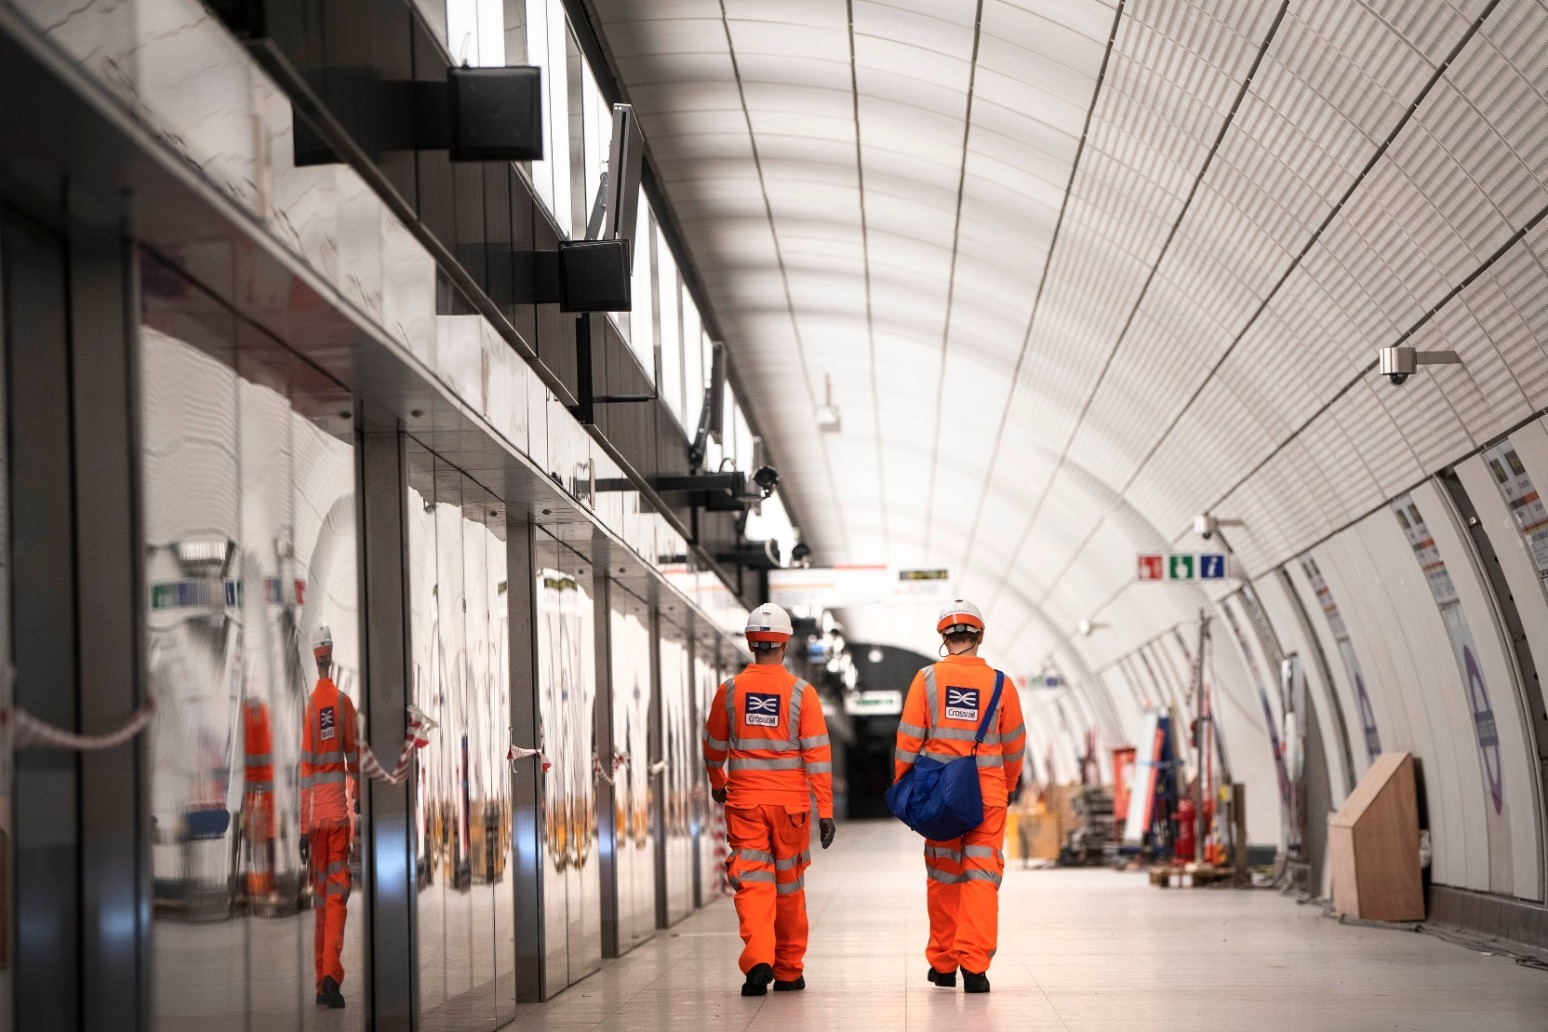 CROSSRAIL DELAYED UNTIL 2021 AS COSTS RISE AGAIN